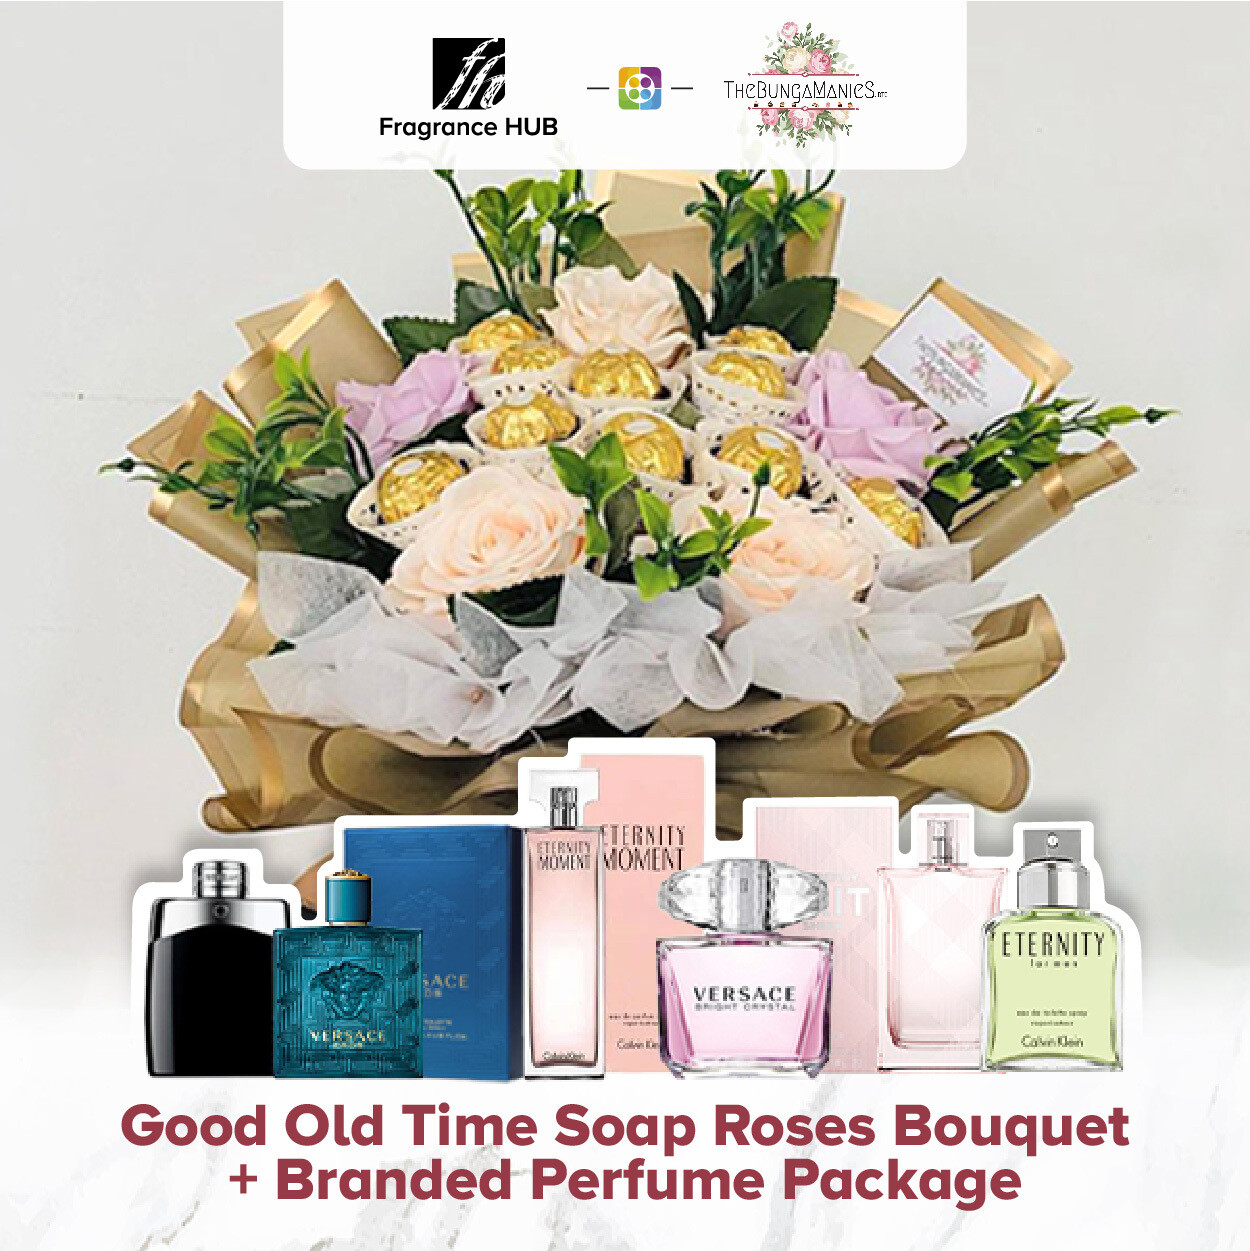 Good Old Time Soap Roses Bouquet + Fragrance Hub Branded Perfume (By: The Bunga Manies from Bintulu)